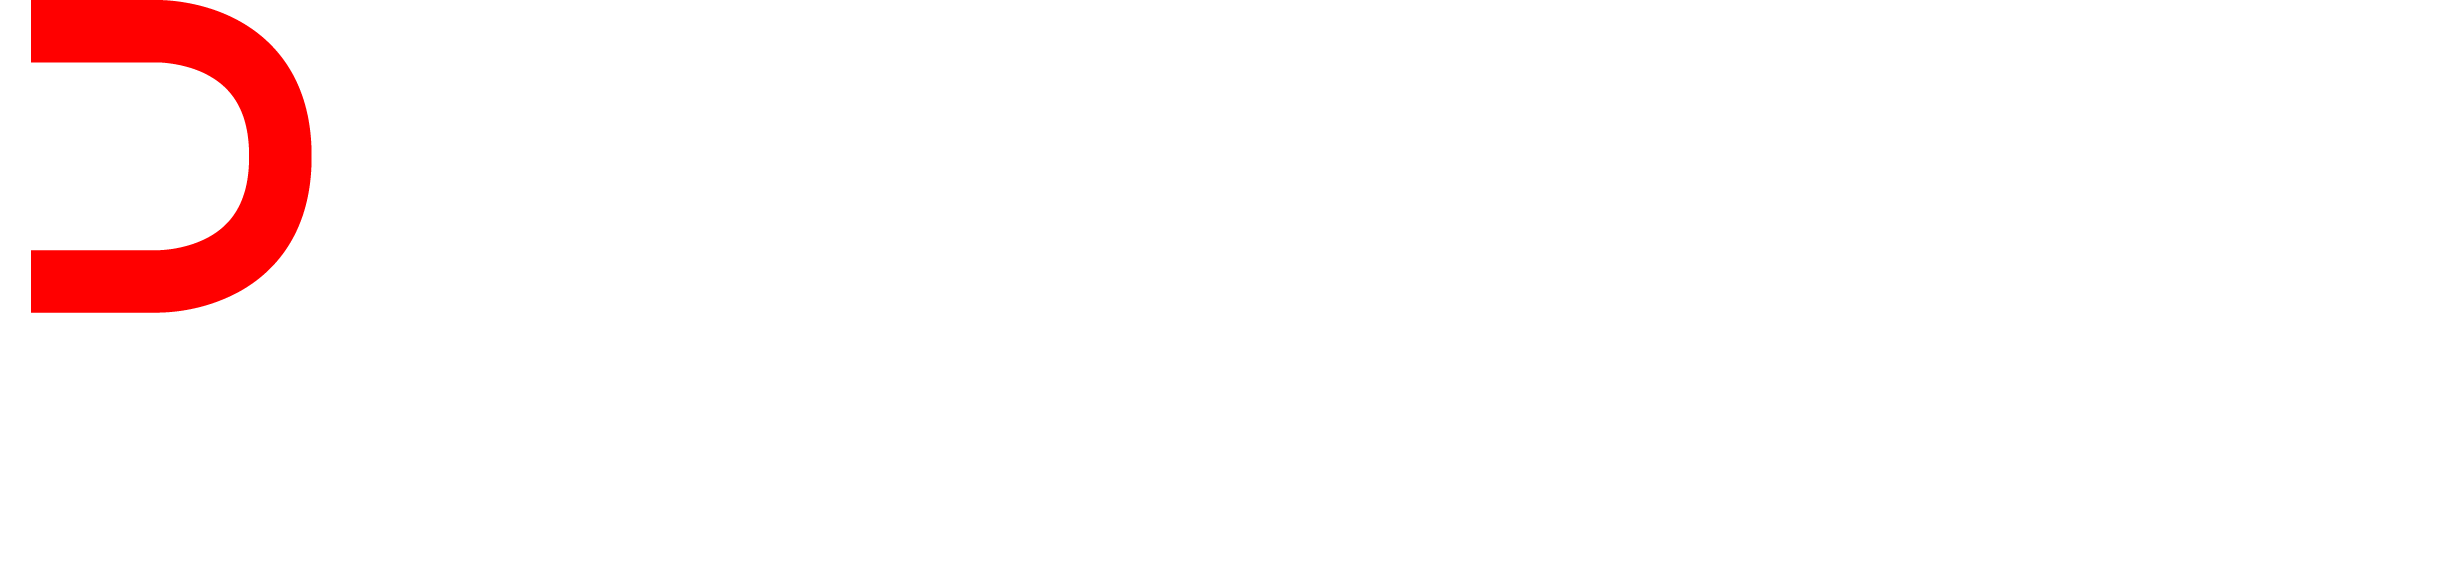 ControlesRL